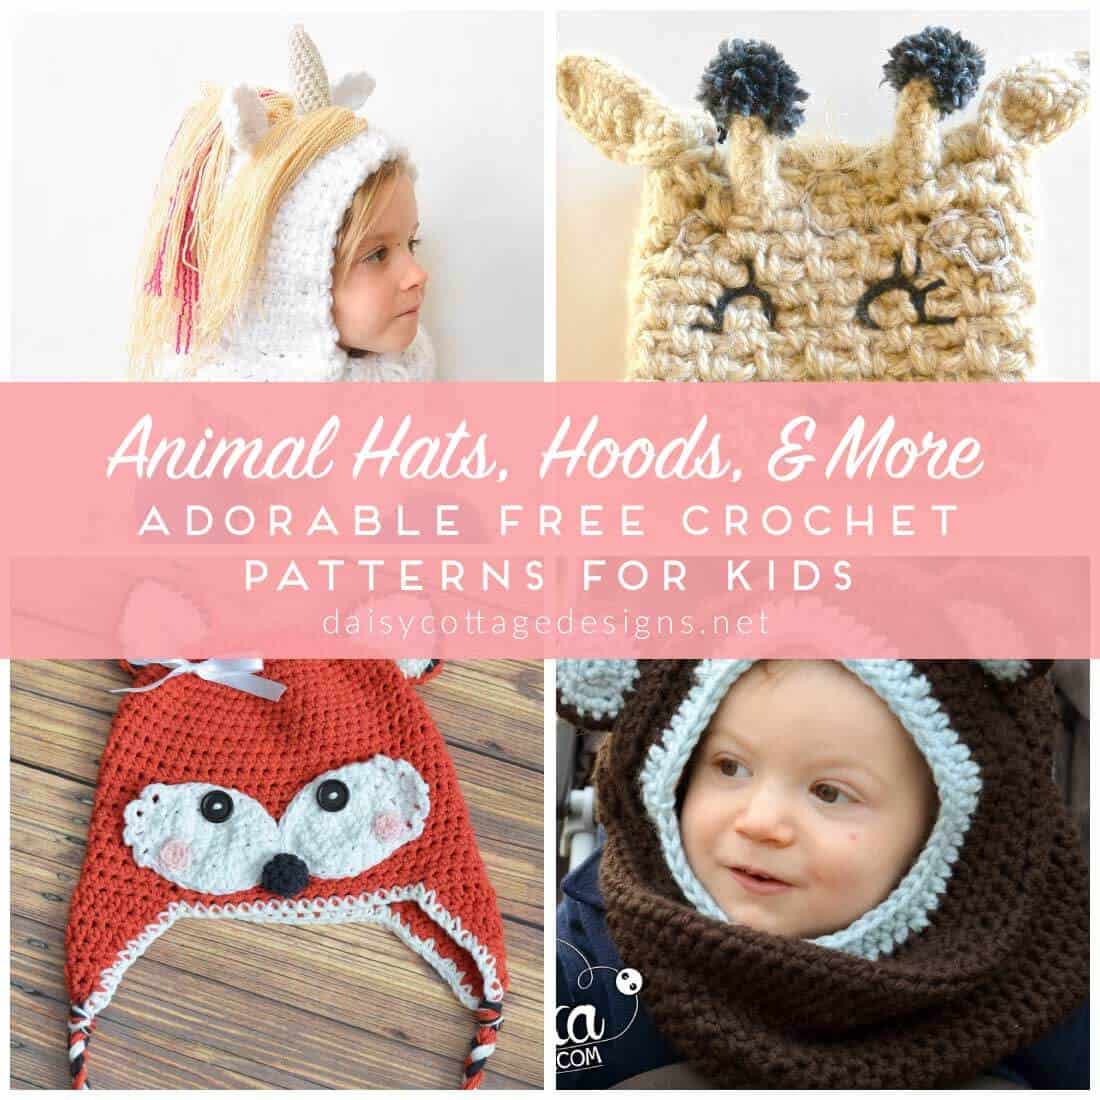 Crochet hat patterns for kids daisy cottage designs crochet hat patterns crochet hood patterns crochet kids hats patterns free crochet patterns bankloansurffo Choice Image